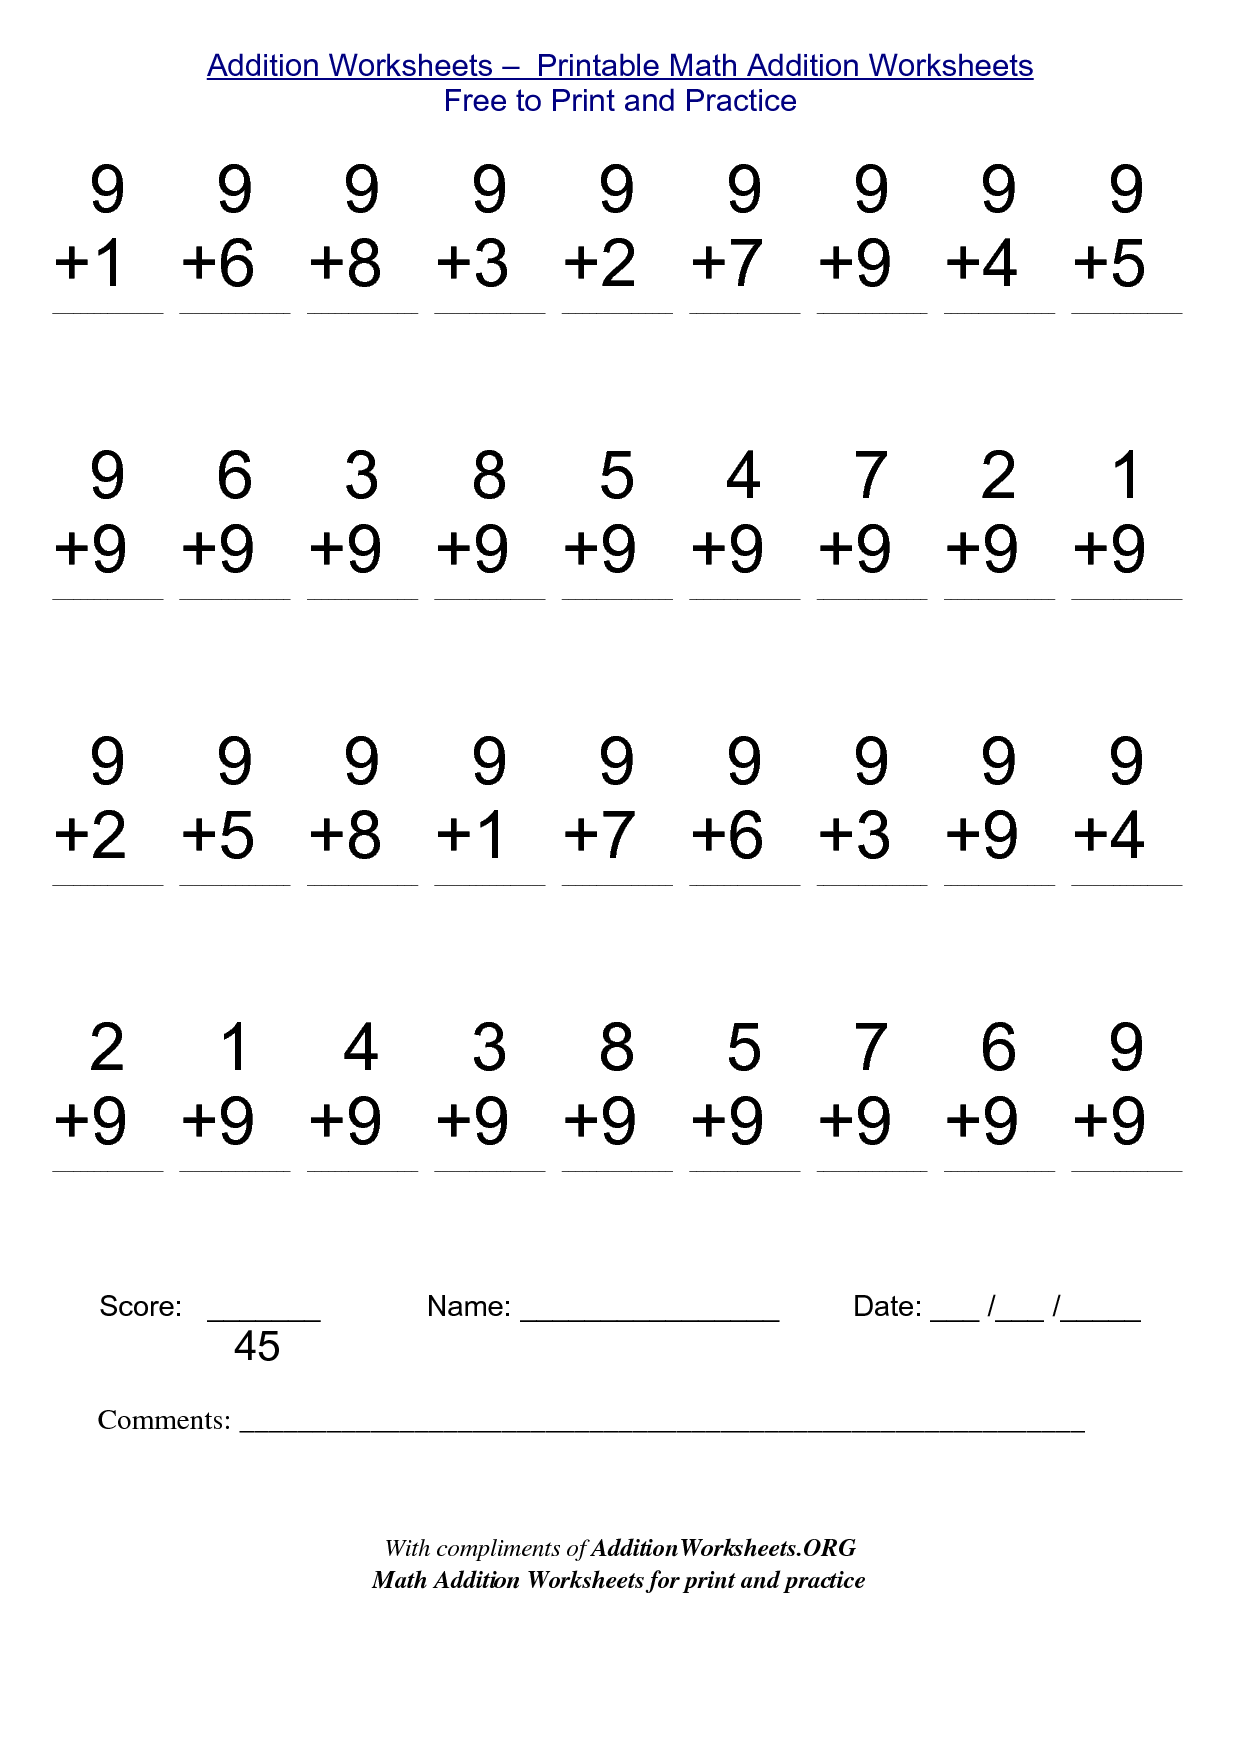 Free Printable Math Addition Worksheets